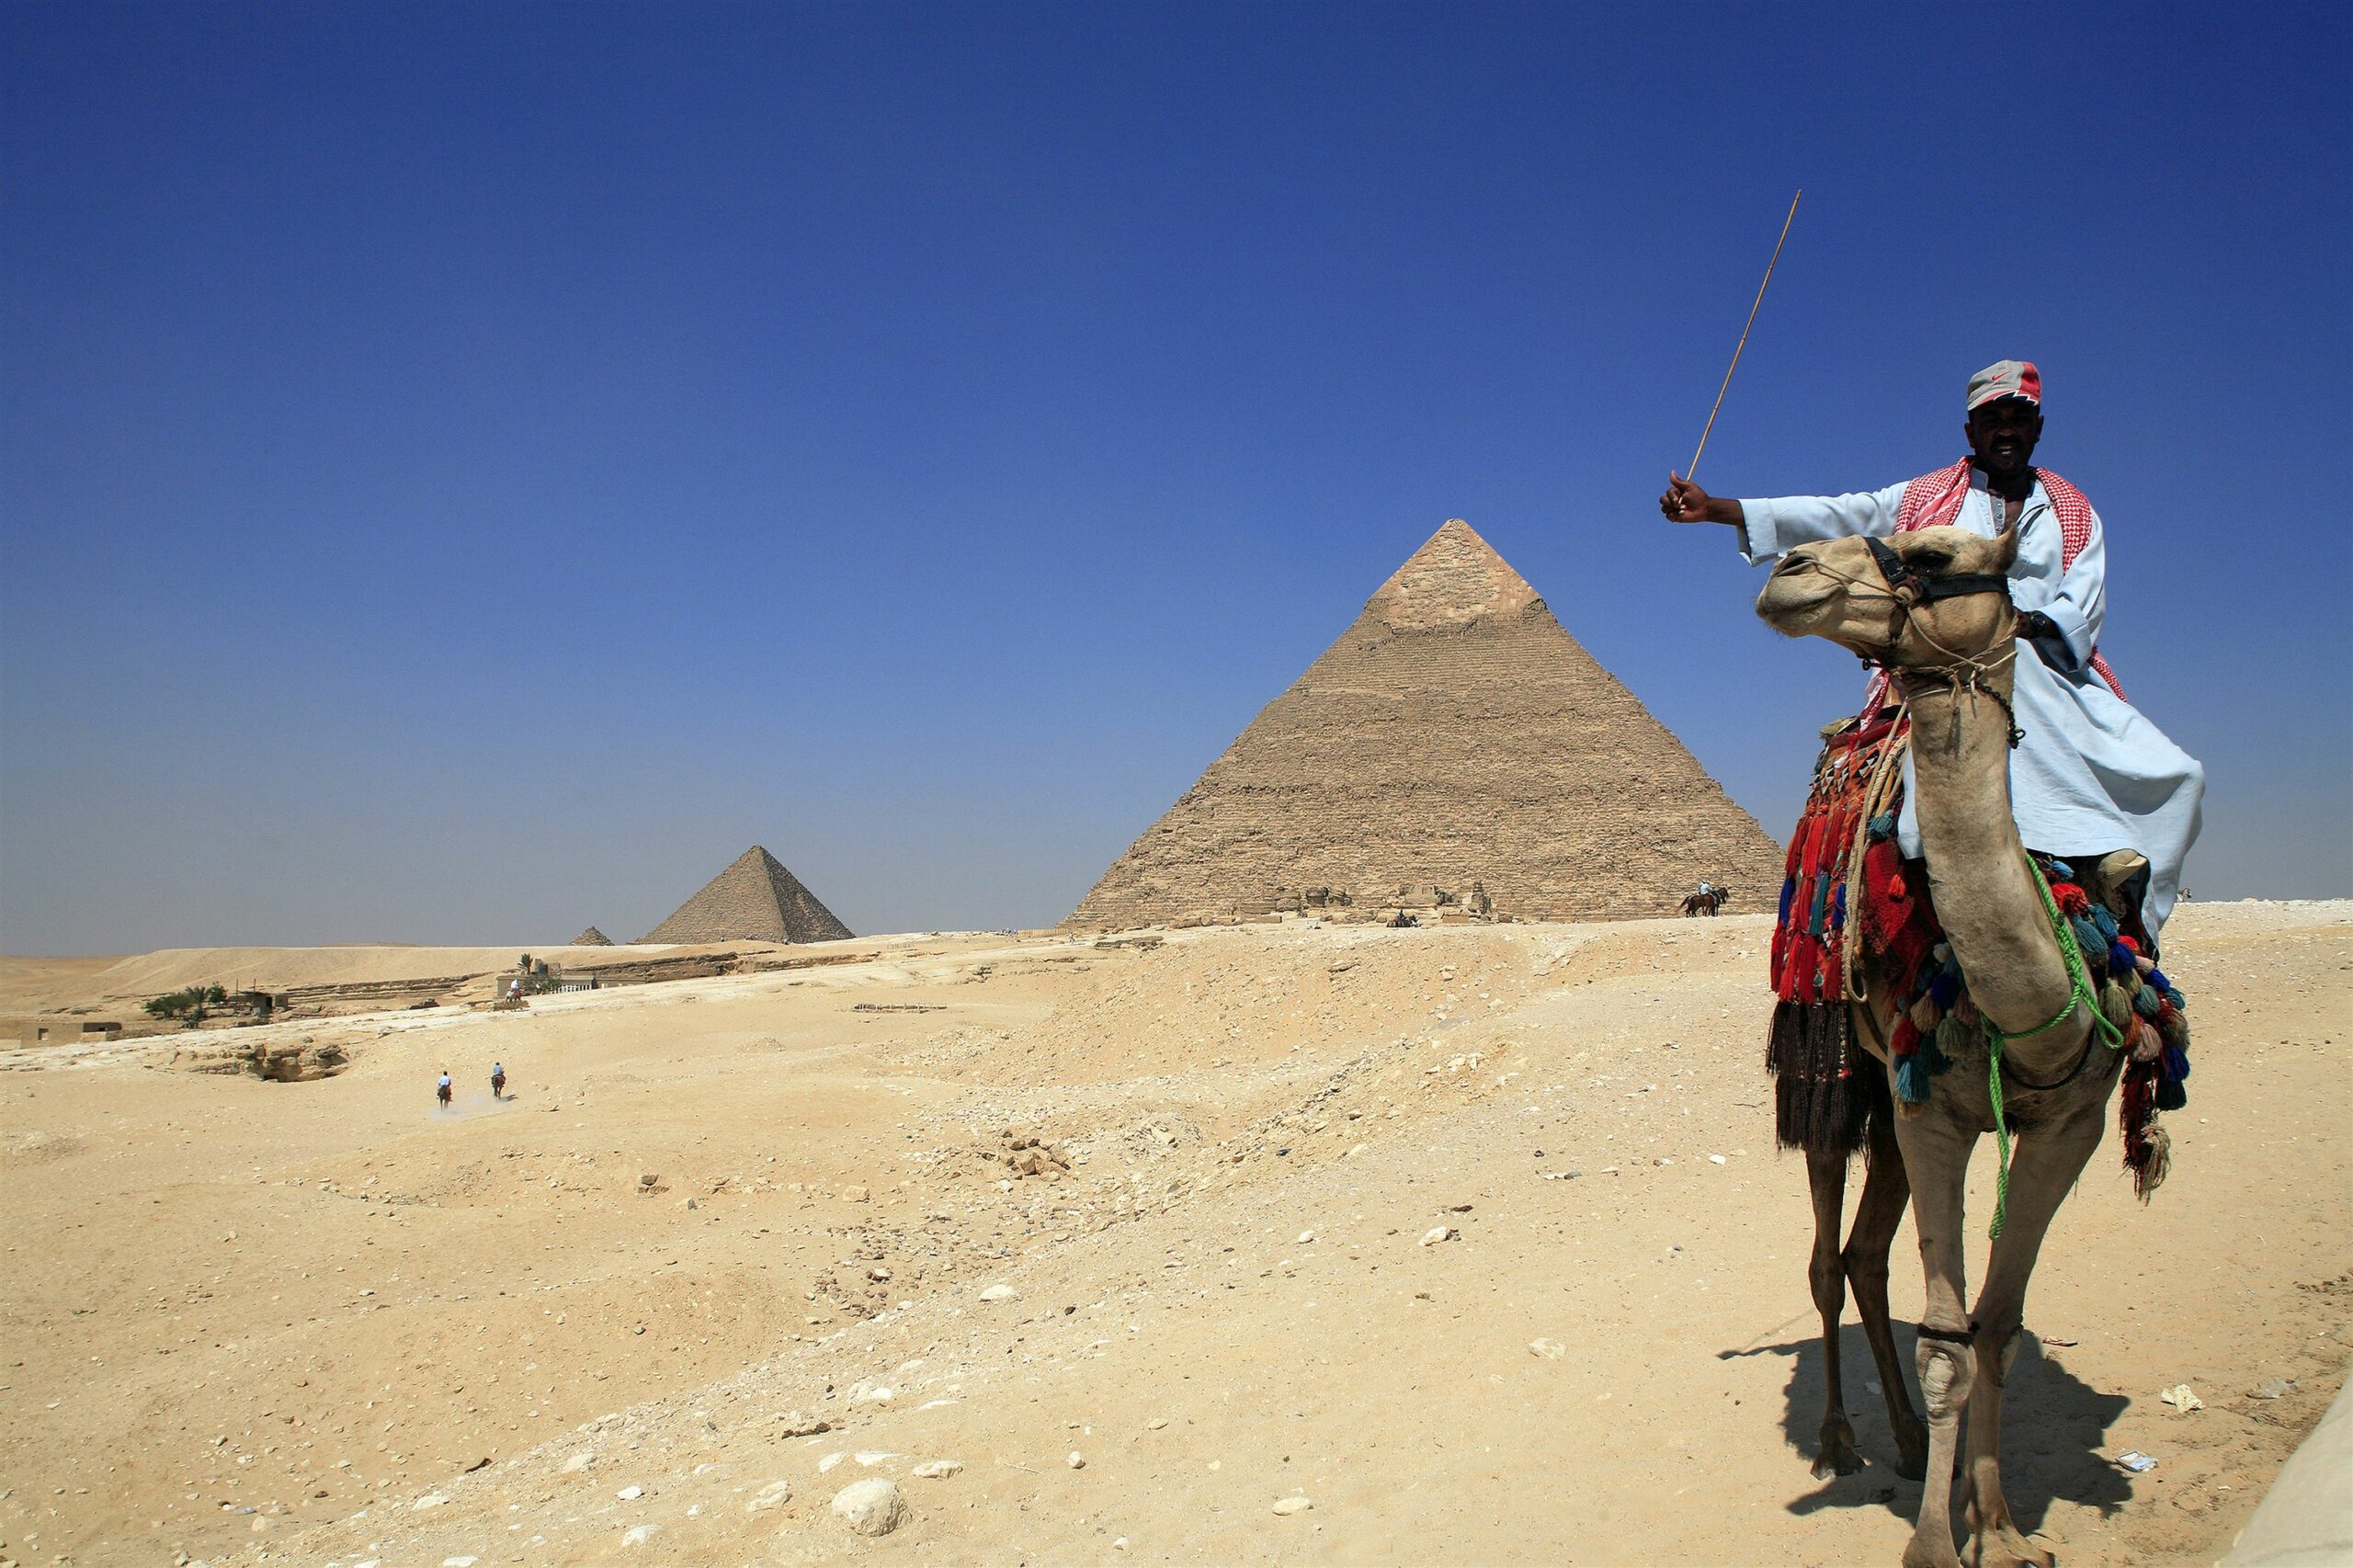 Great pyramids in background and Egyptian man on camel in foreground seen on Egypt safari